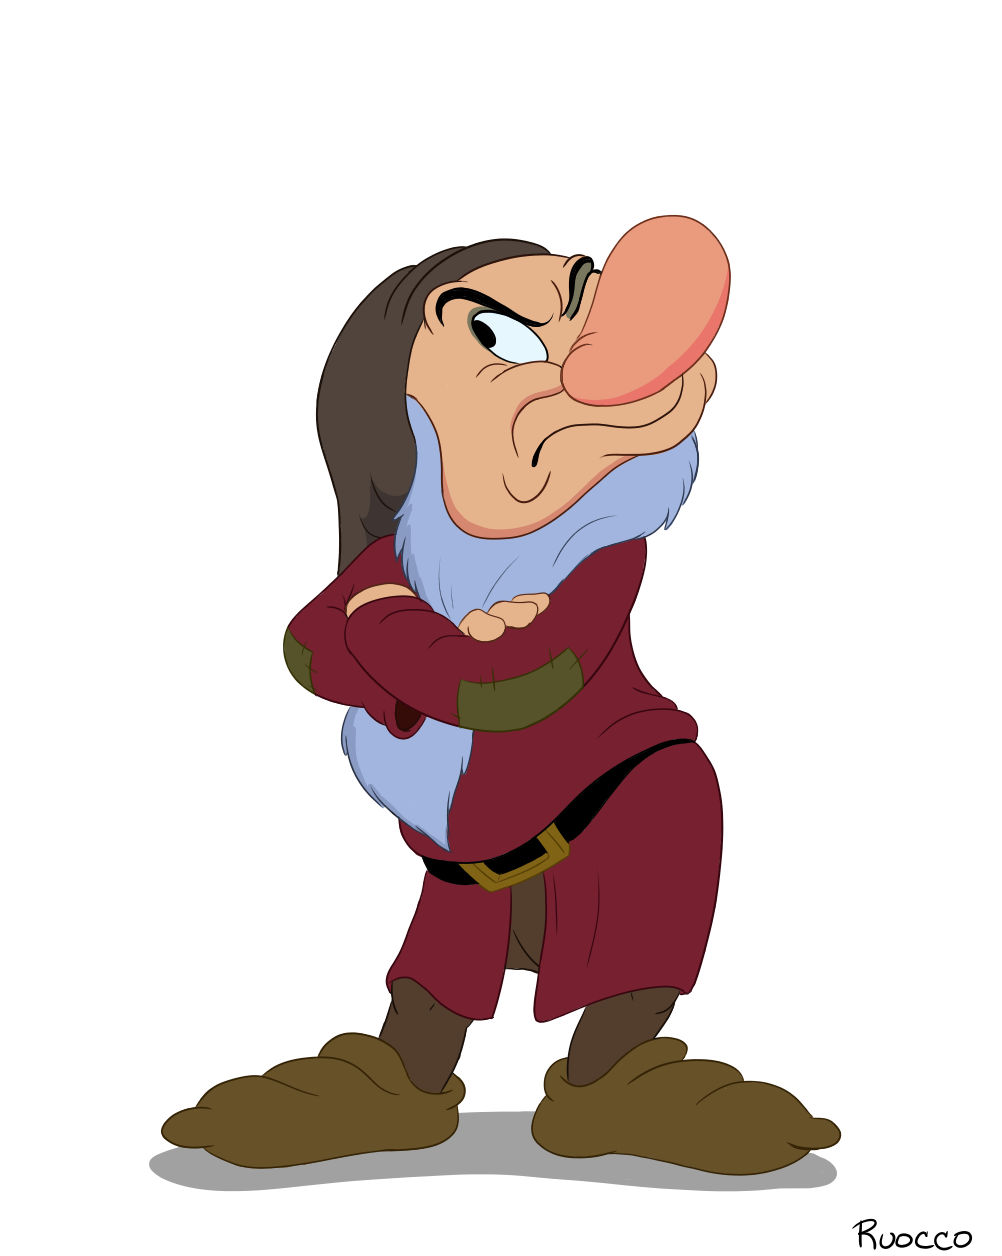 Grumpy Snow White Dwarf PNG Transparent Images.